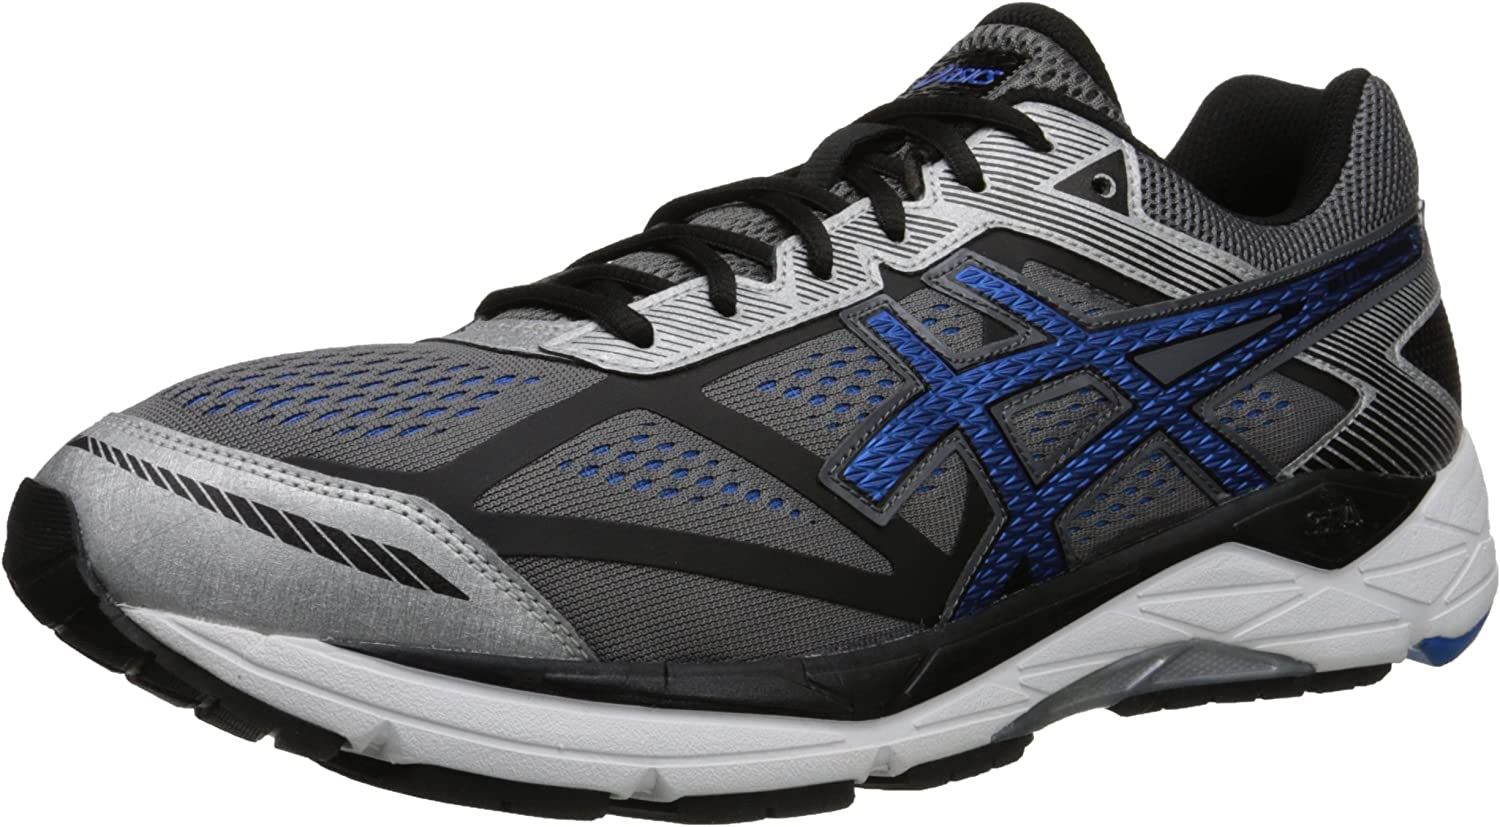 Acechar minusválido ambición  Amazon.com | ASICS Men's GEL-Foundation 12 Running Shoe | Road Running